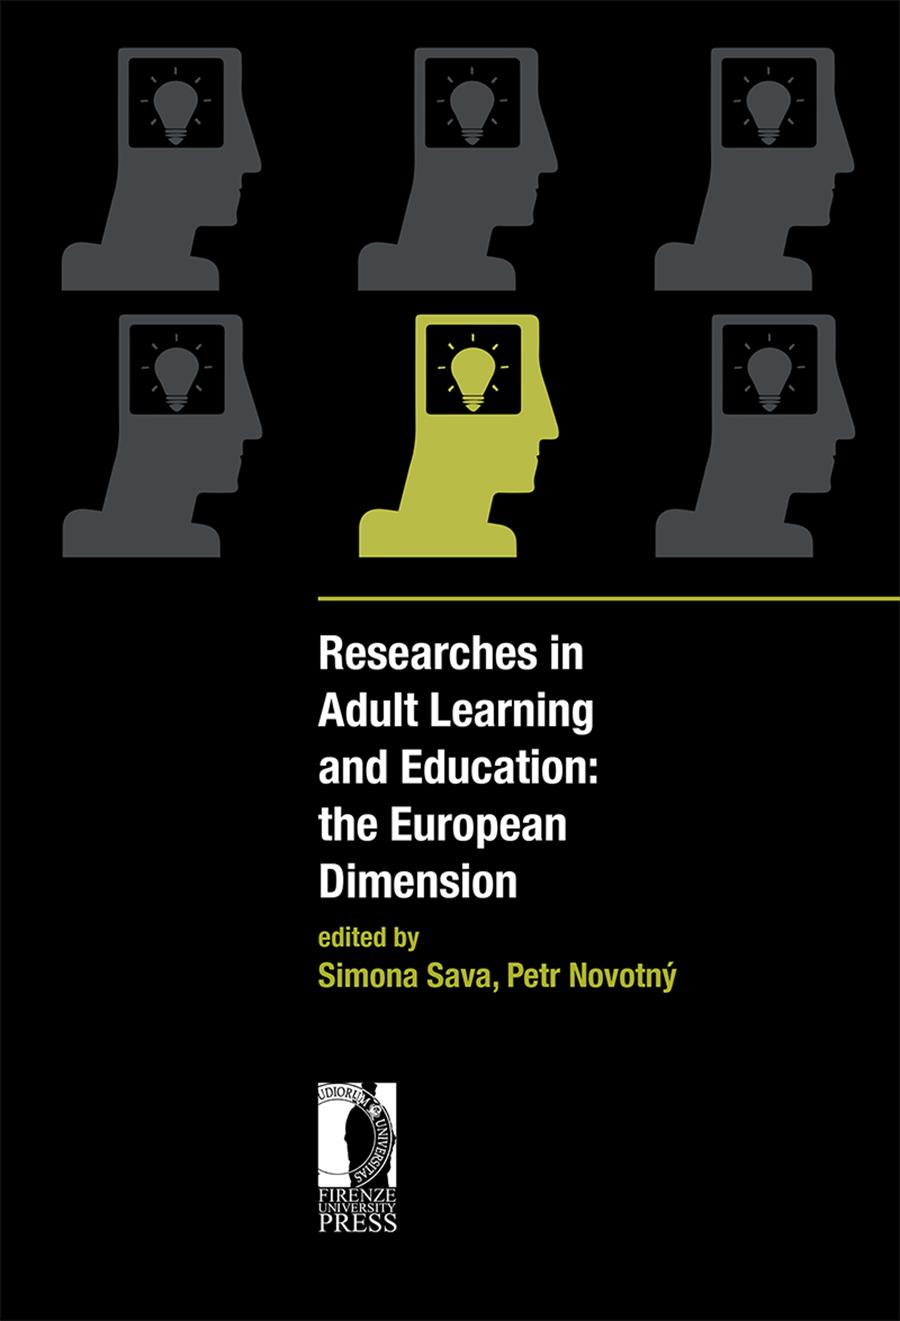 Researches in Adult Learning and Education: the European Dimension